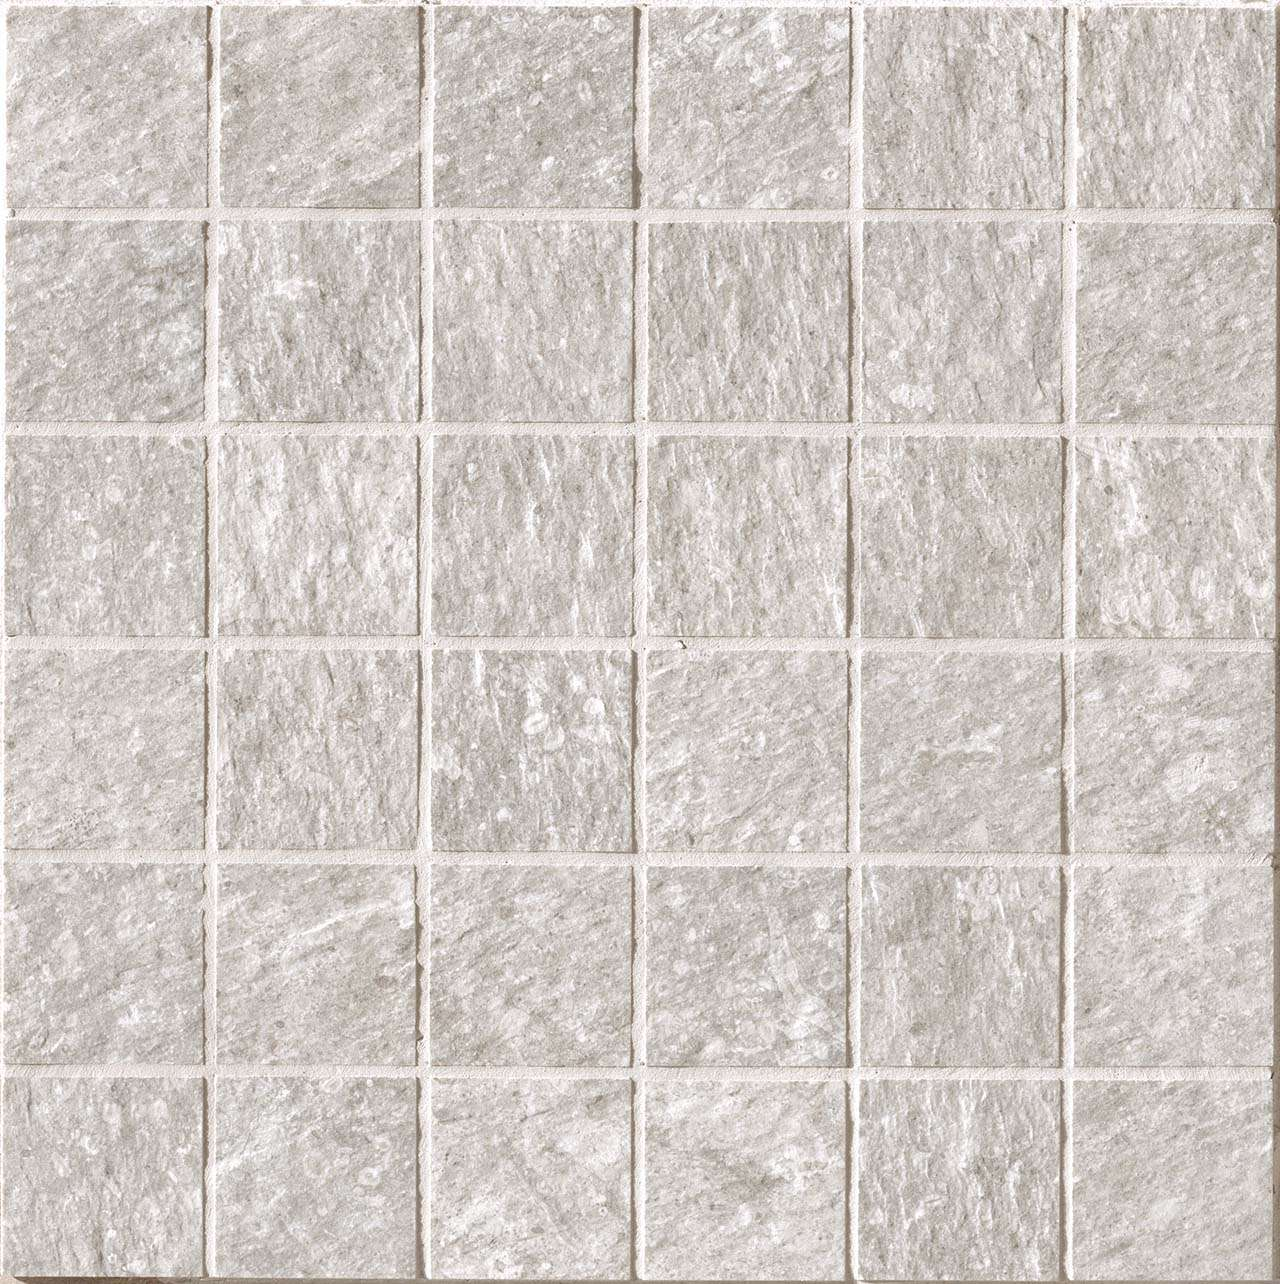 Fap Nord Artic Gres Macromosaico Out 30x30